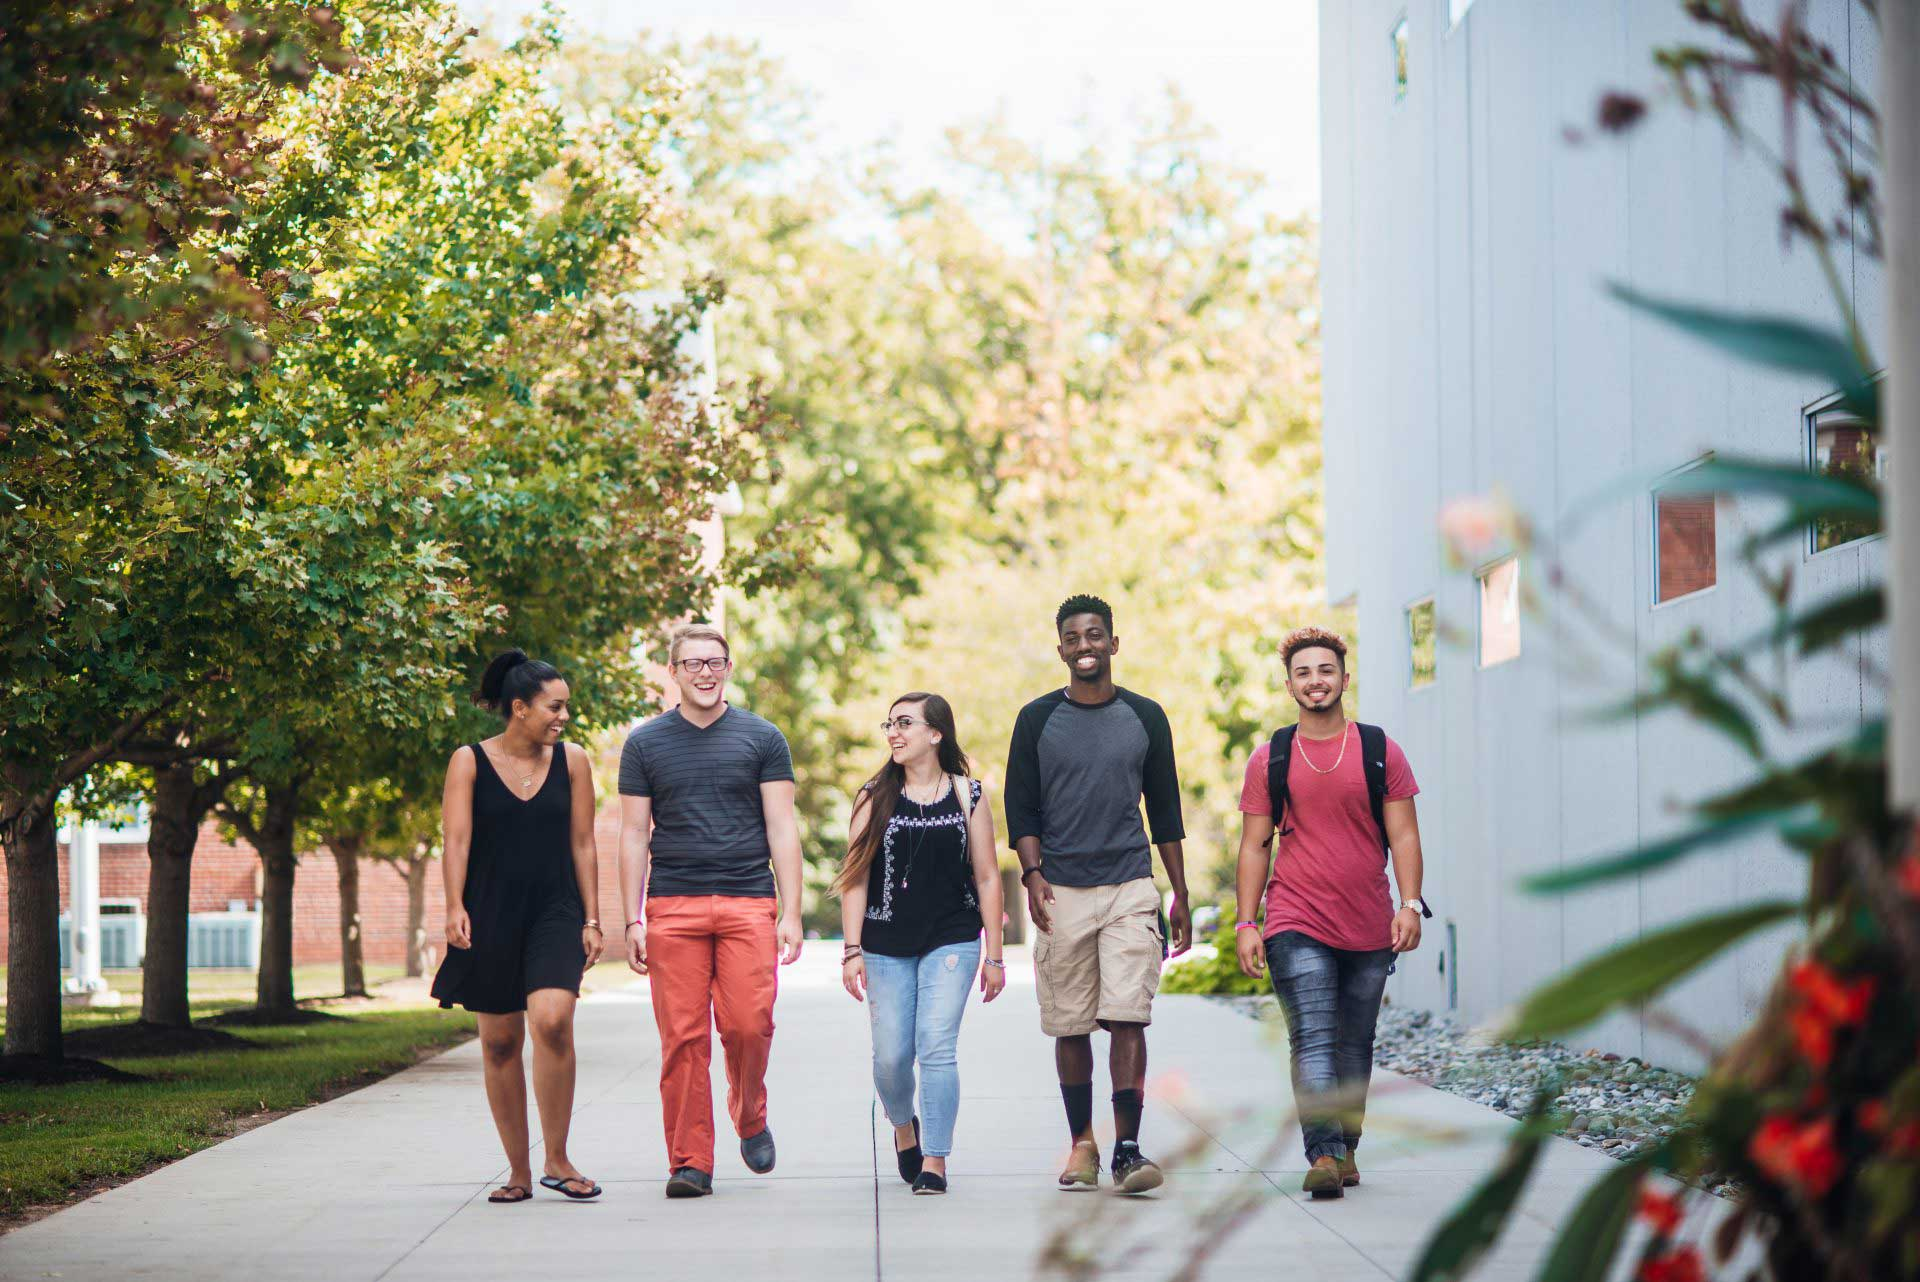 UVF students walking on campus